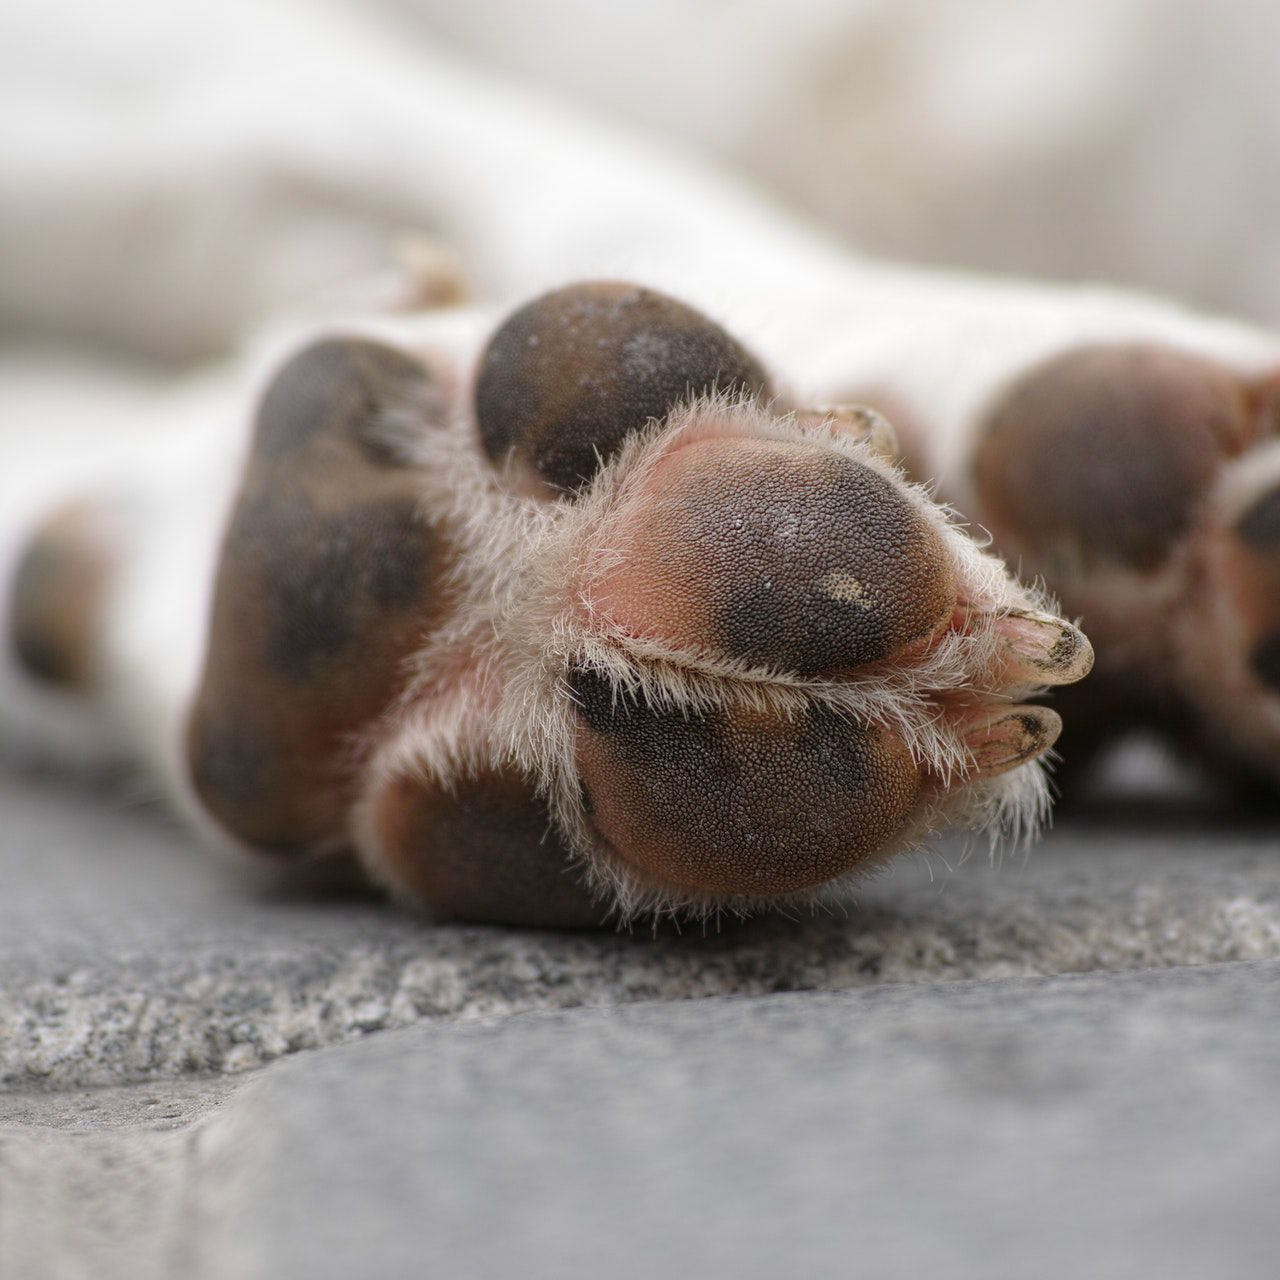 Nail Bed Fungal Infection In Dogs Nail Ftempo